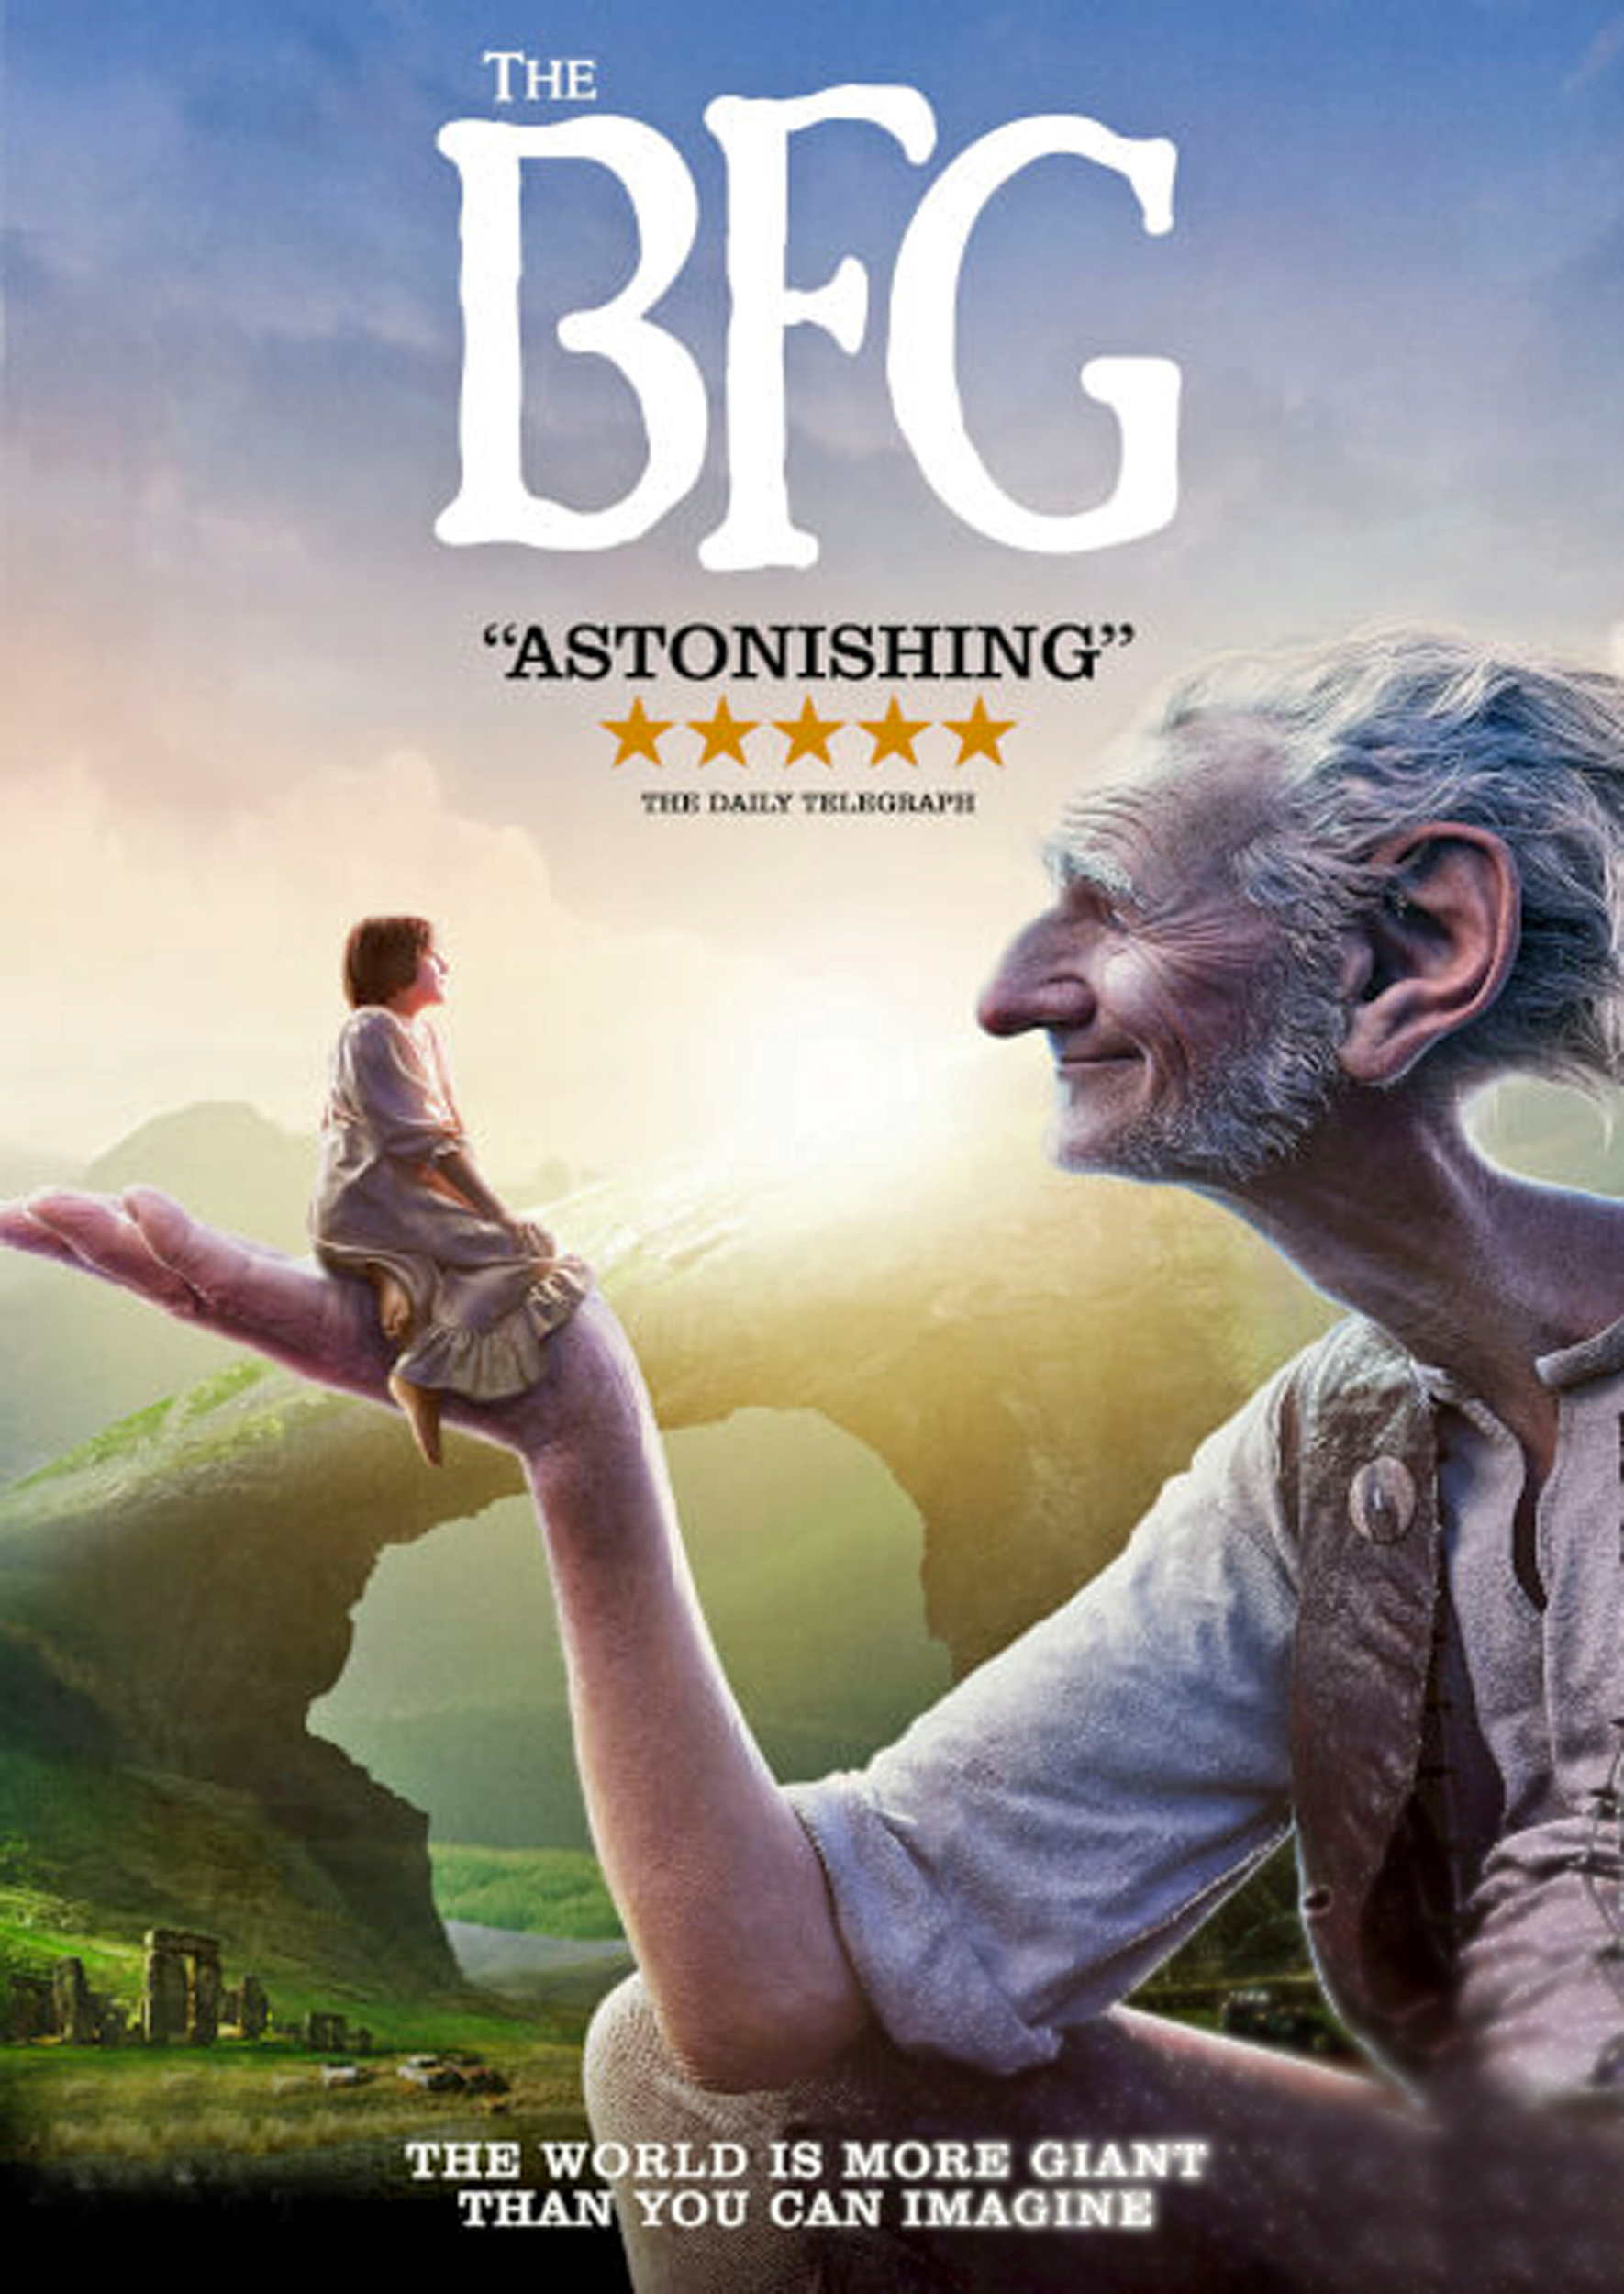 Fundraising screening of The BFG